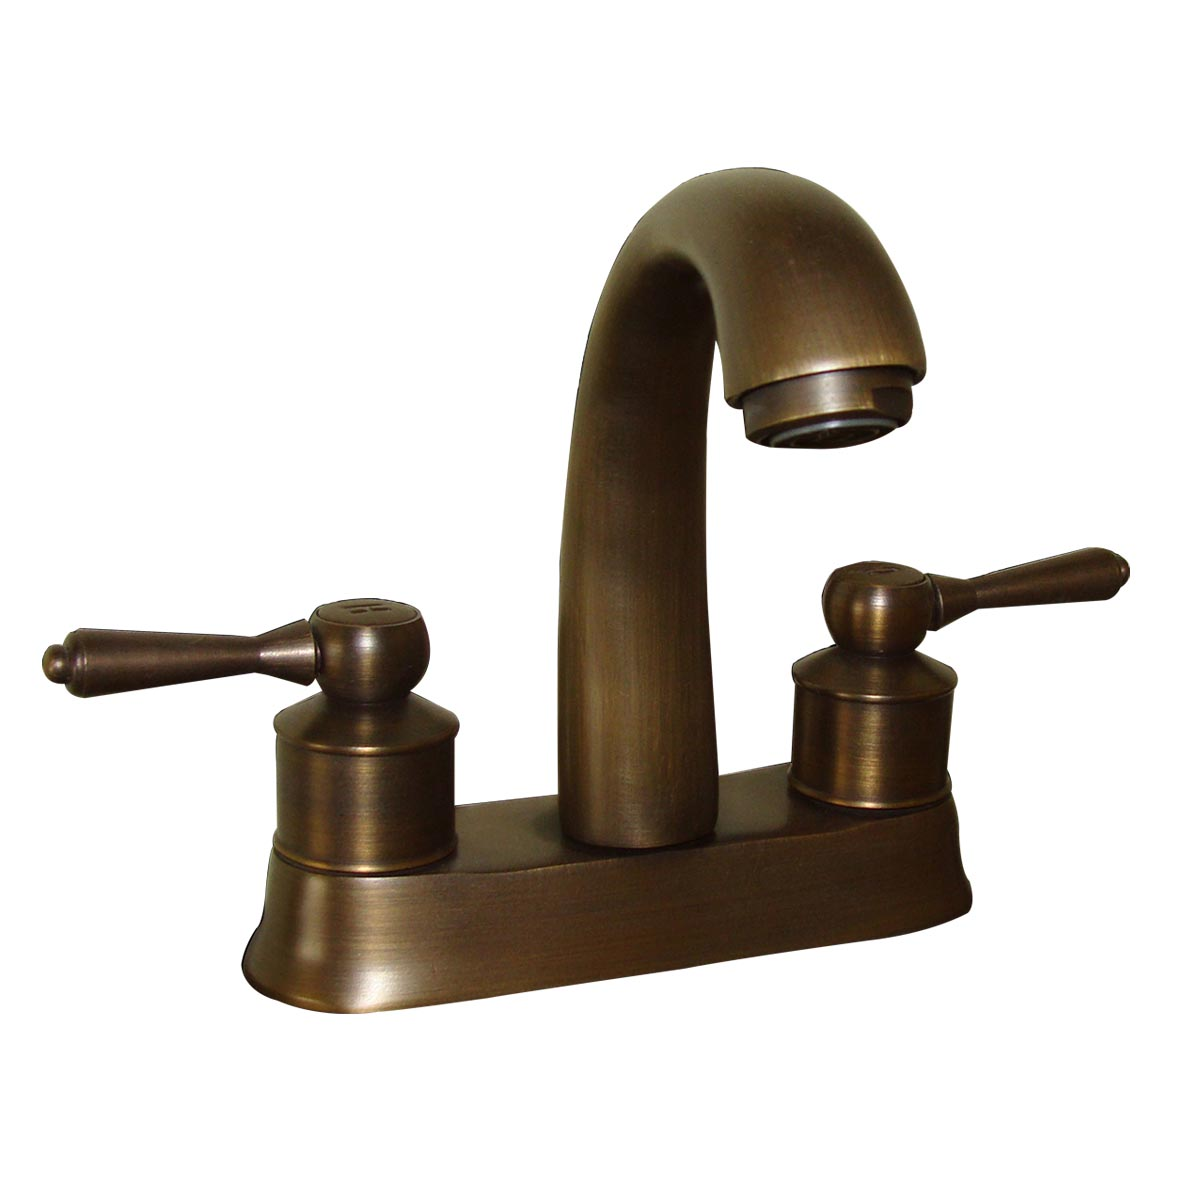 Brass Lavatory Faucet : Faucet Antique Brass Classic Bathroom Sink Centerset 2 Lever